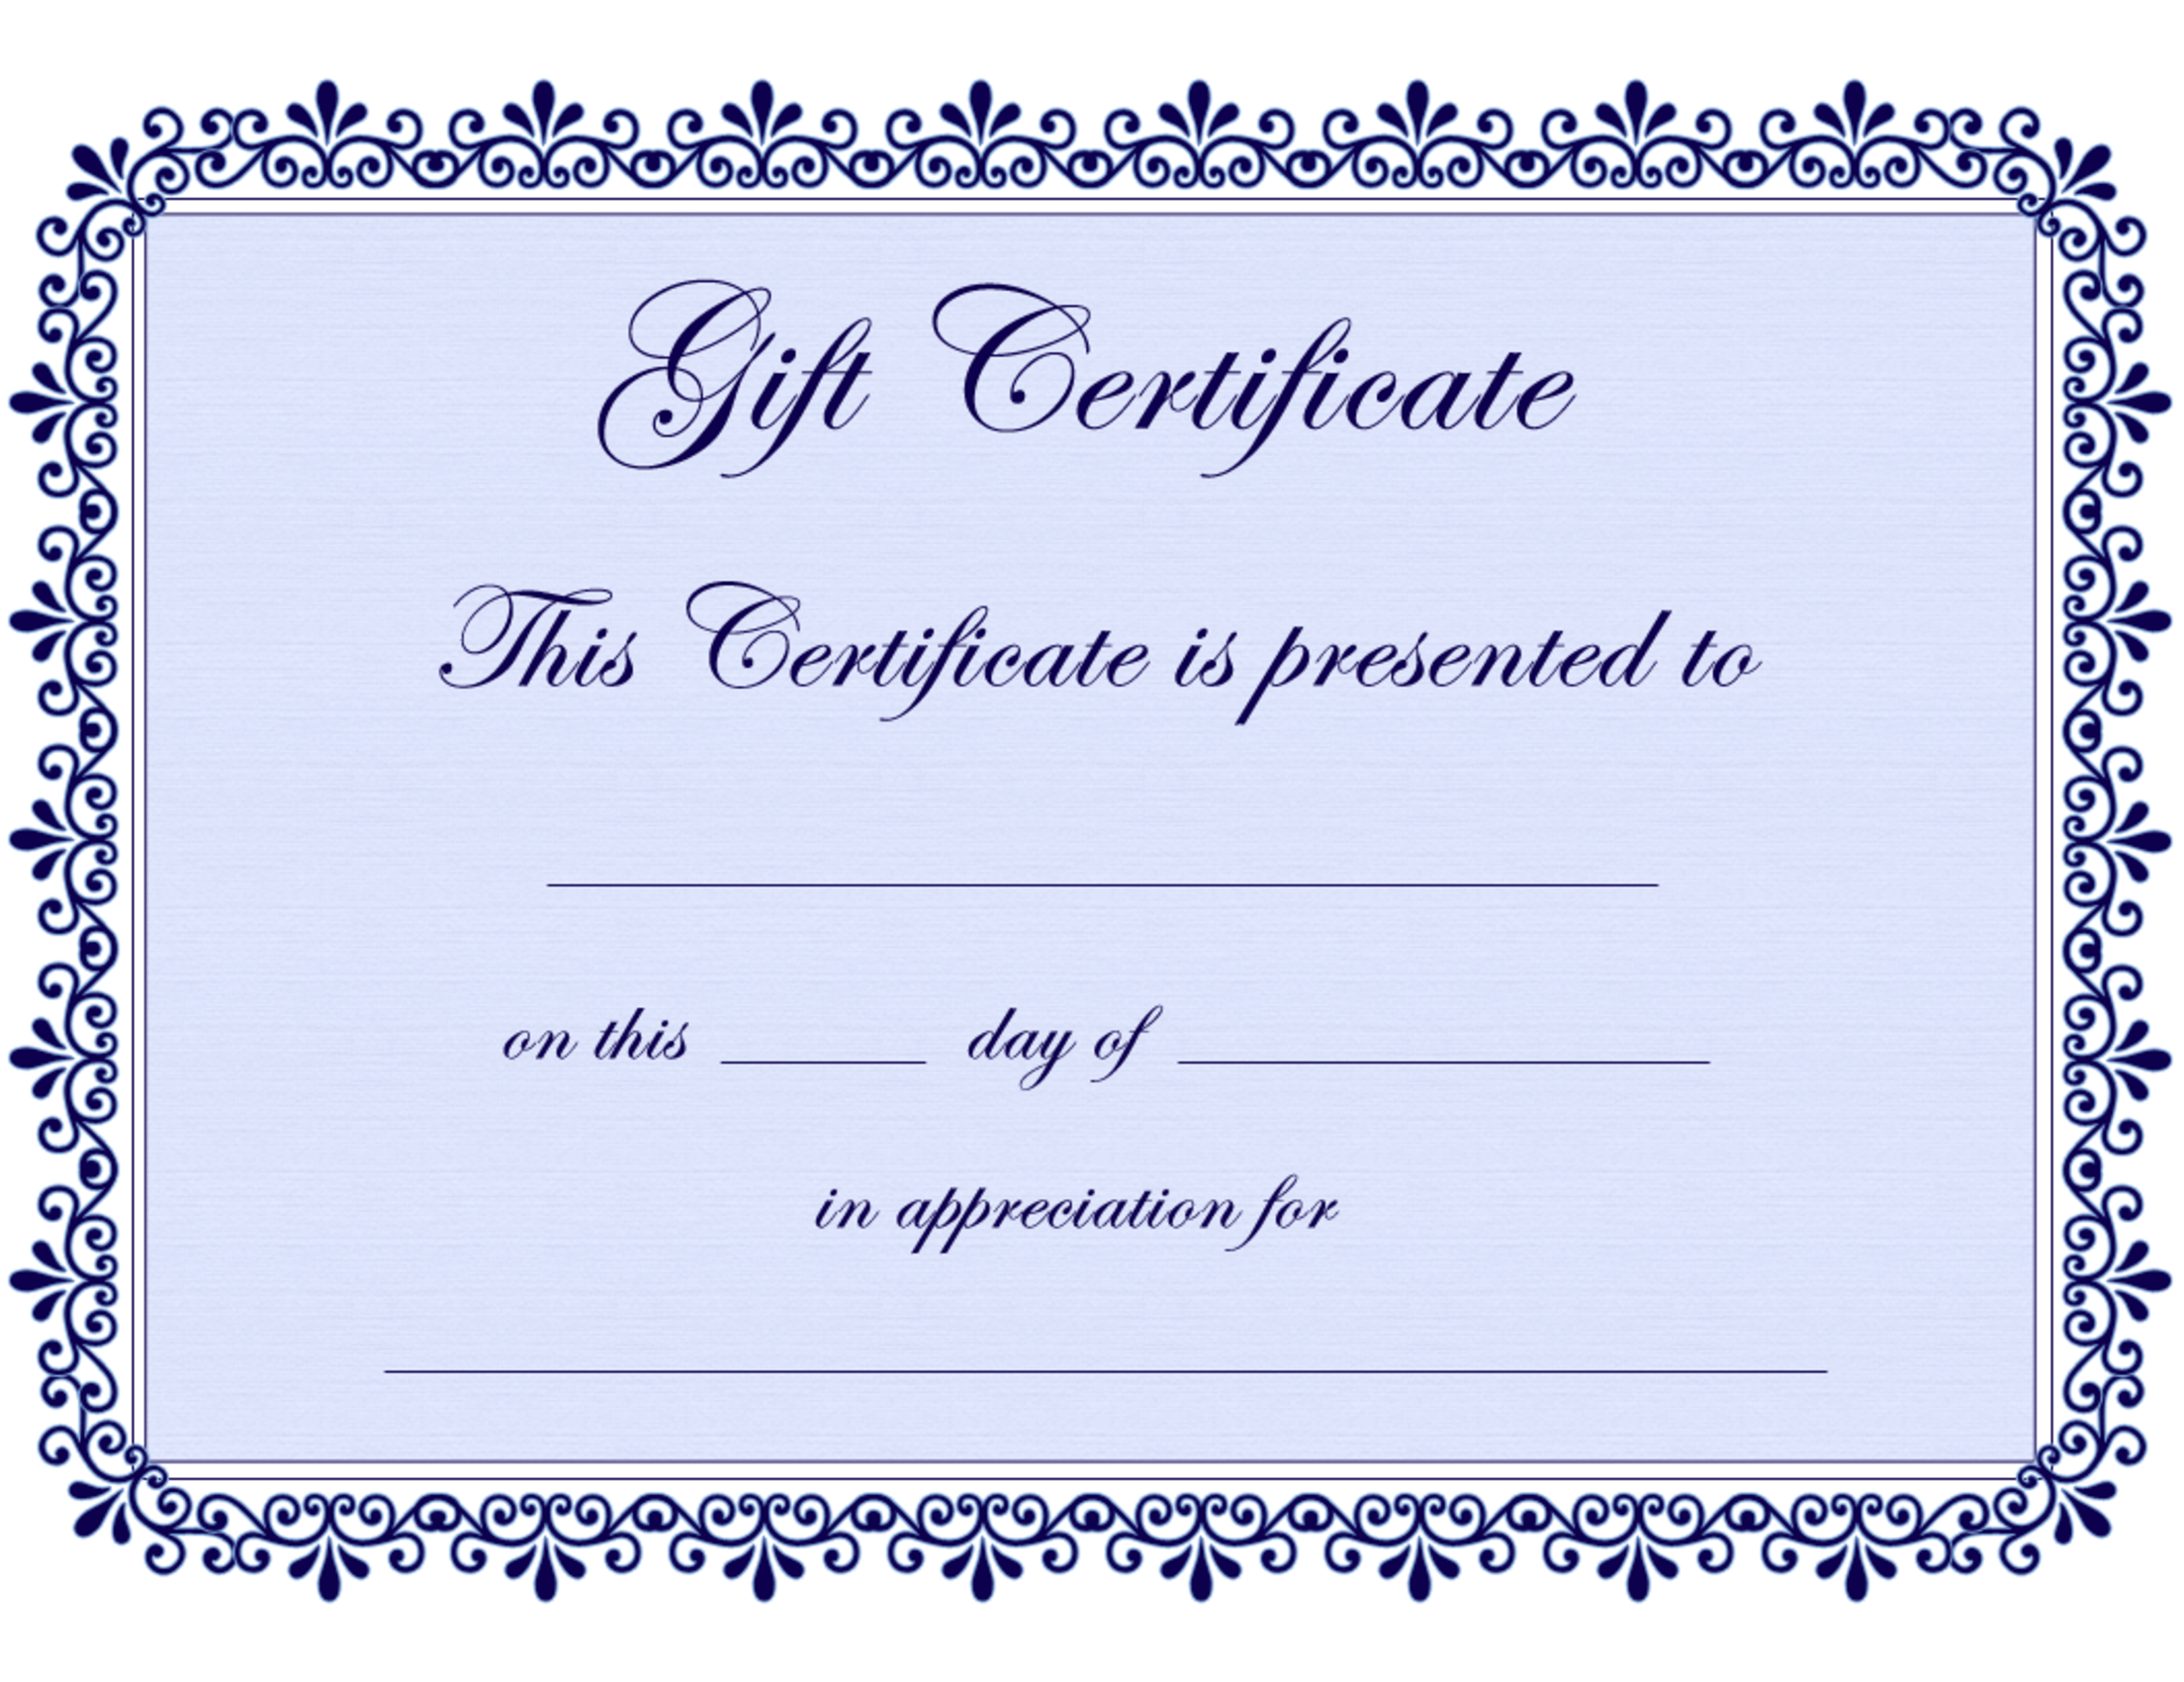 Certificate templates gift certificate template free pdf printable babysitting coupon template clipart best generic gift certificates with pictures gifts blue yellow yadclub